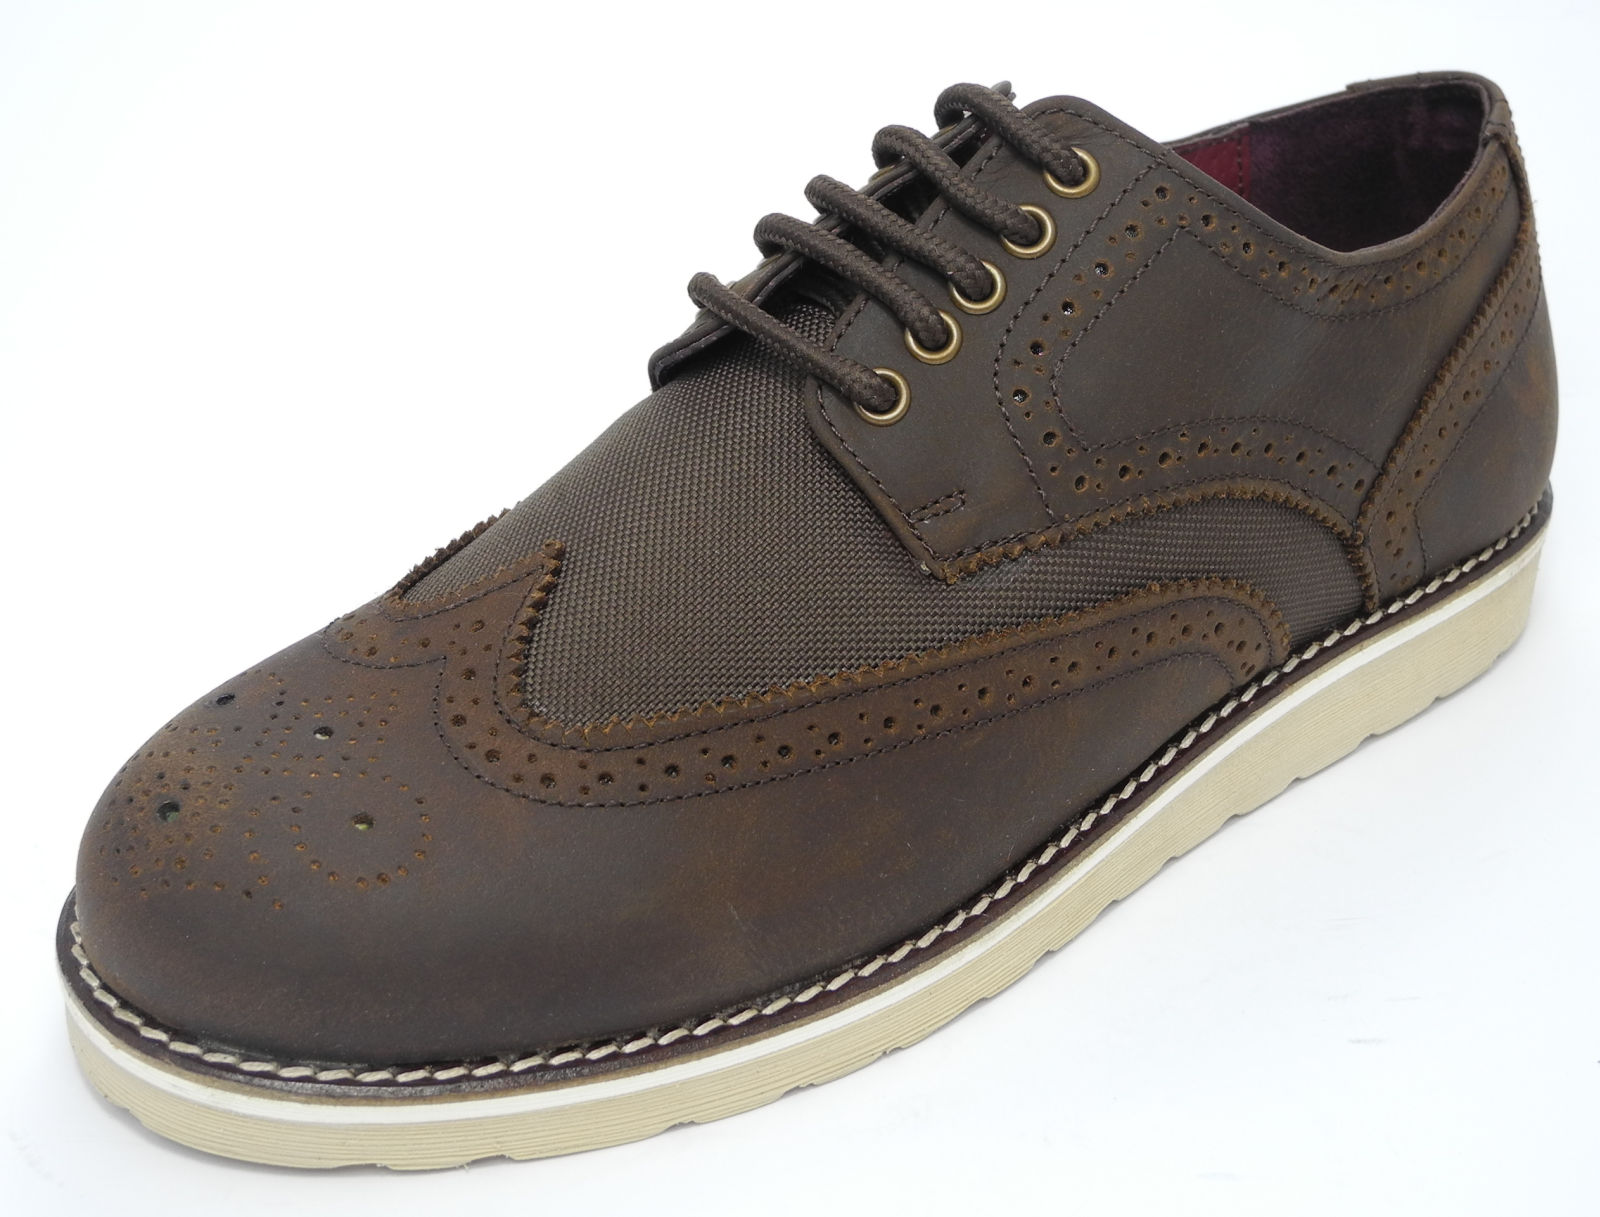 Mens Brown Real Leather Flat Sole Brogues Shoes Size 7 8 9 ...